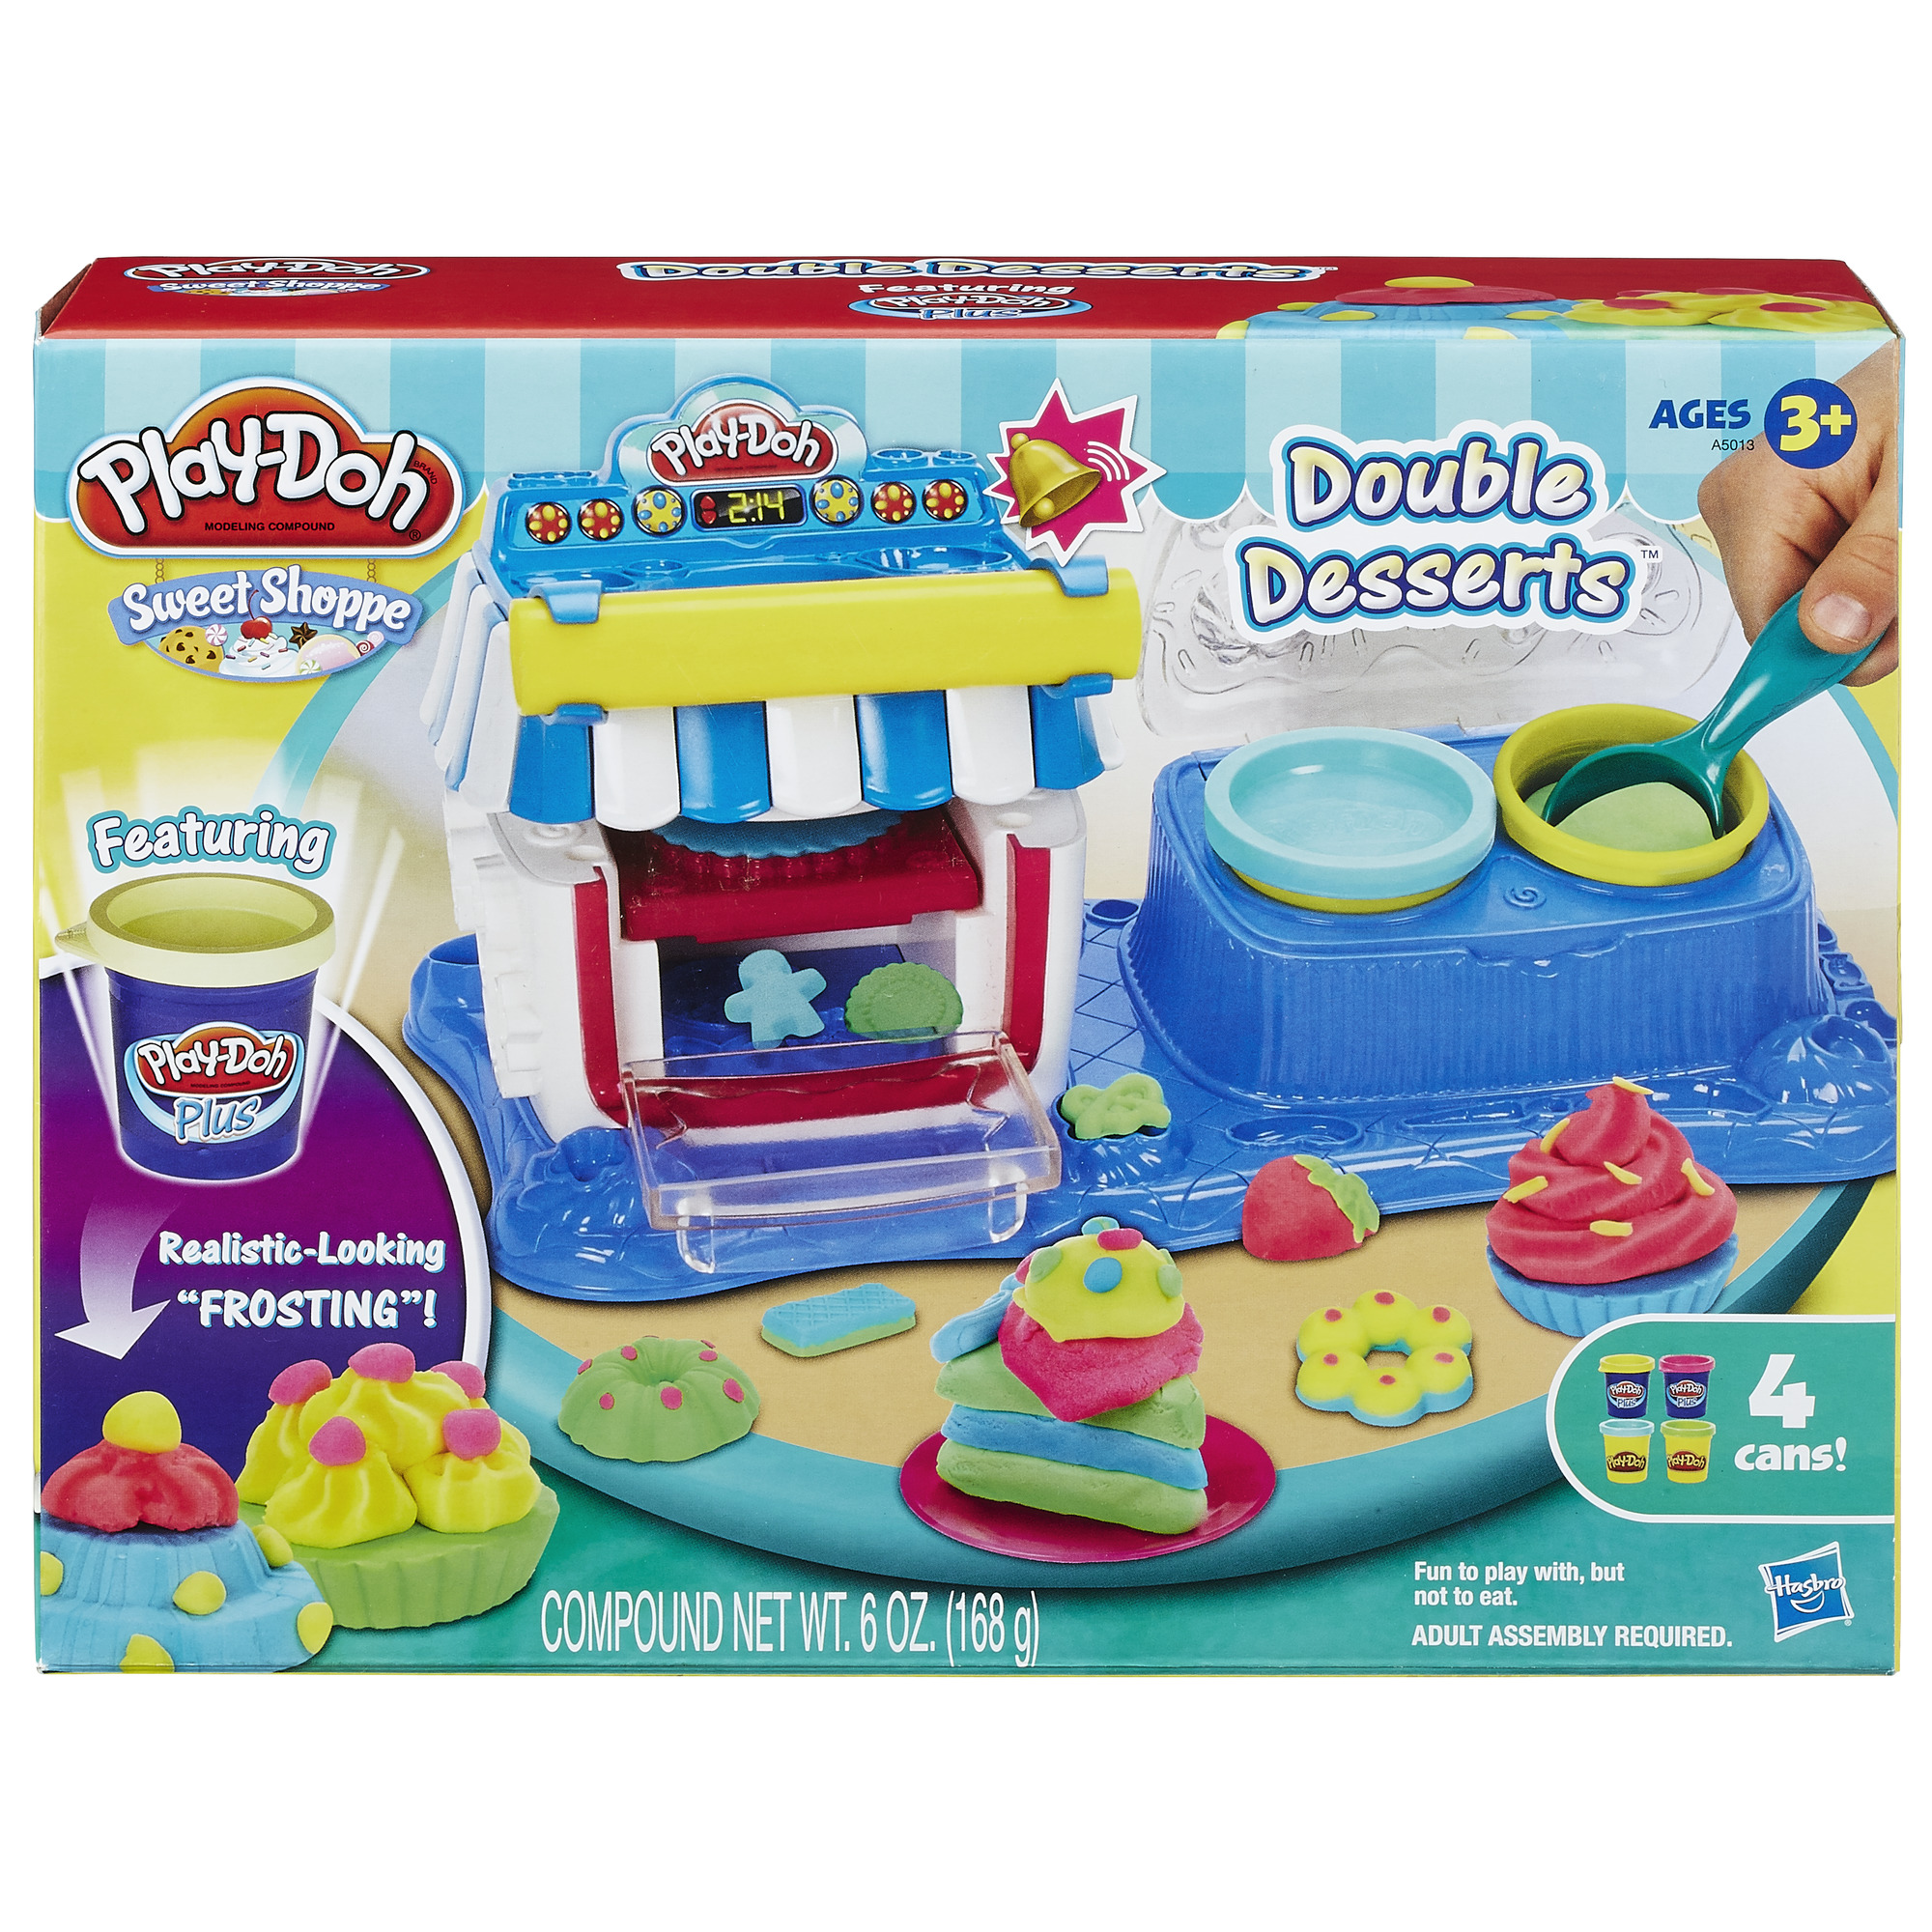 Play-Doh Sweet Shoppe Double Desserts Food Set with 4 Cans of Dough